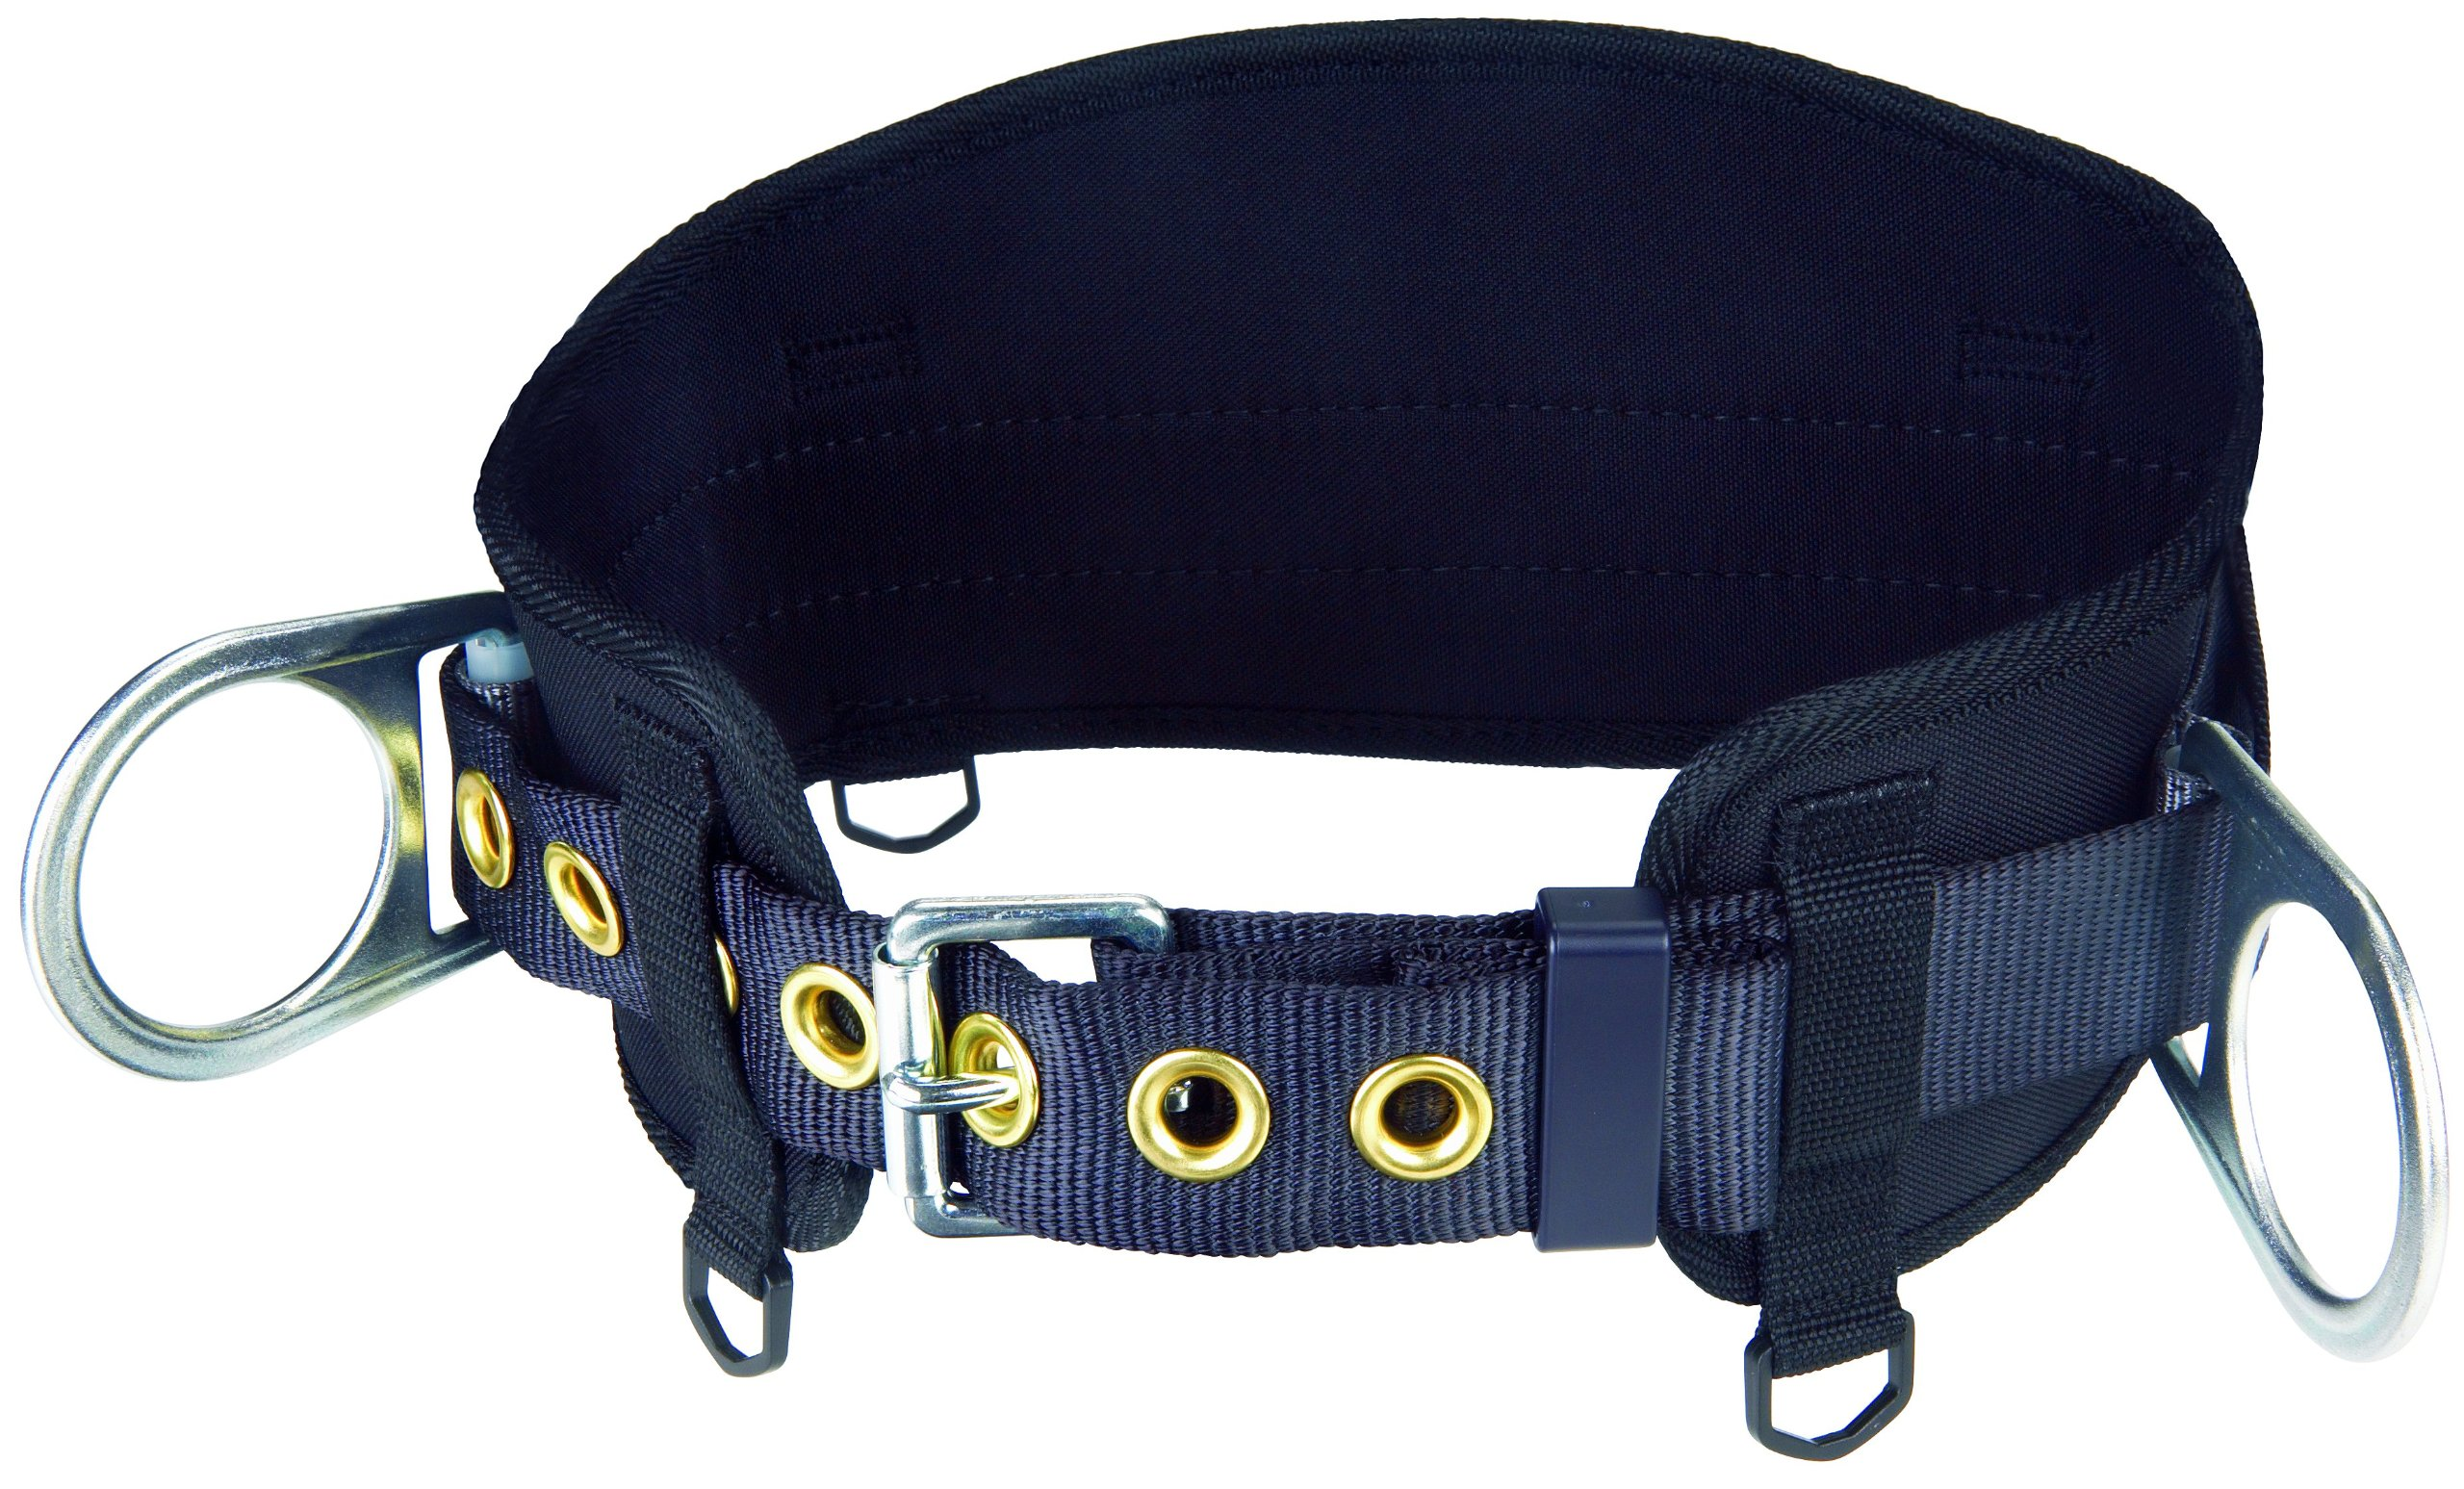 3M Protecta PRO 1091015 Body Belt with Hip Pad, 2 D-Rings, X-Large, Black by 3M Fall Protection Business (Image #1)